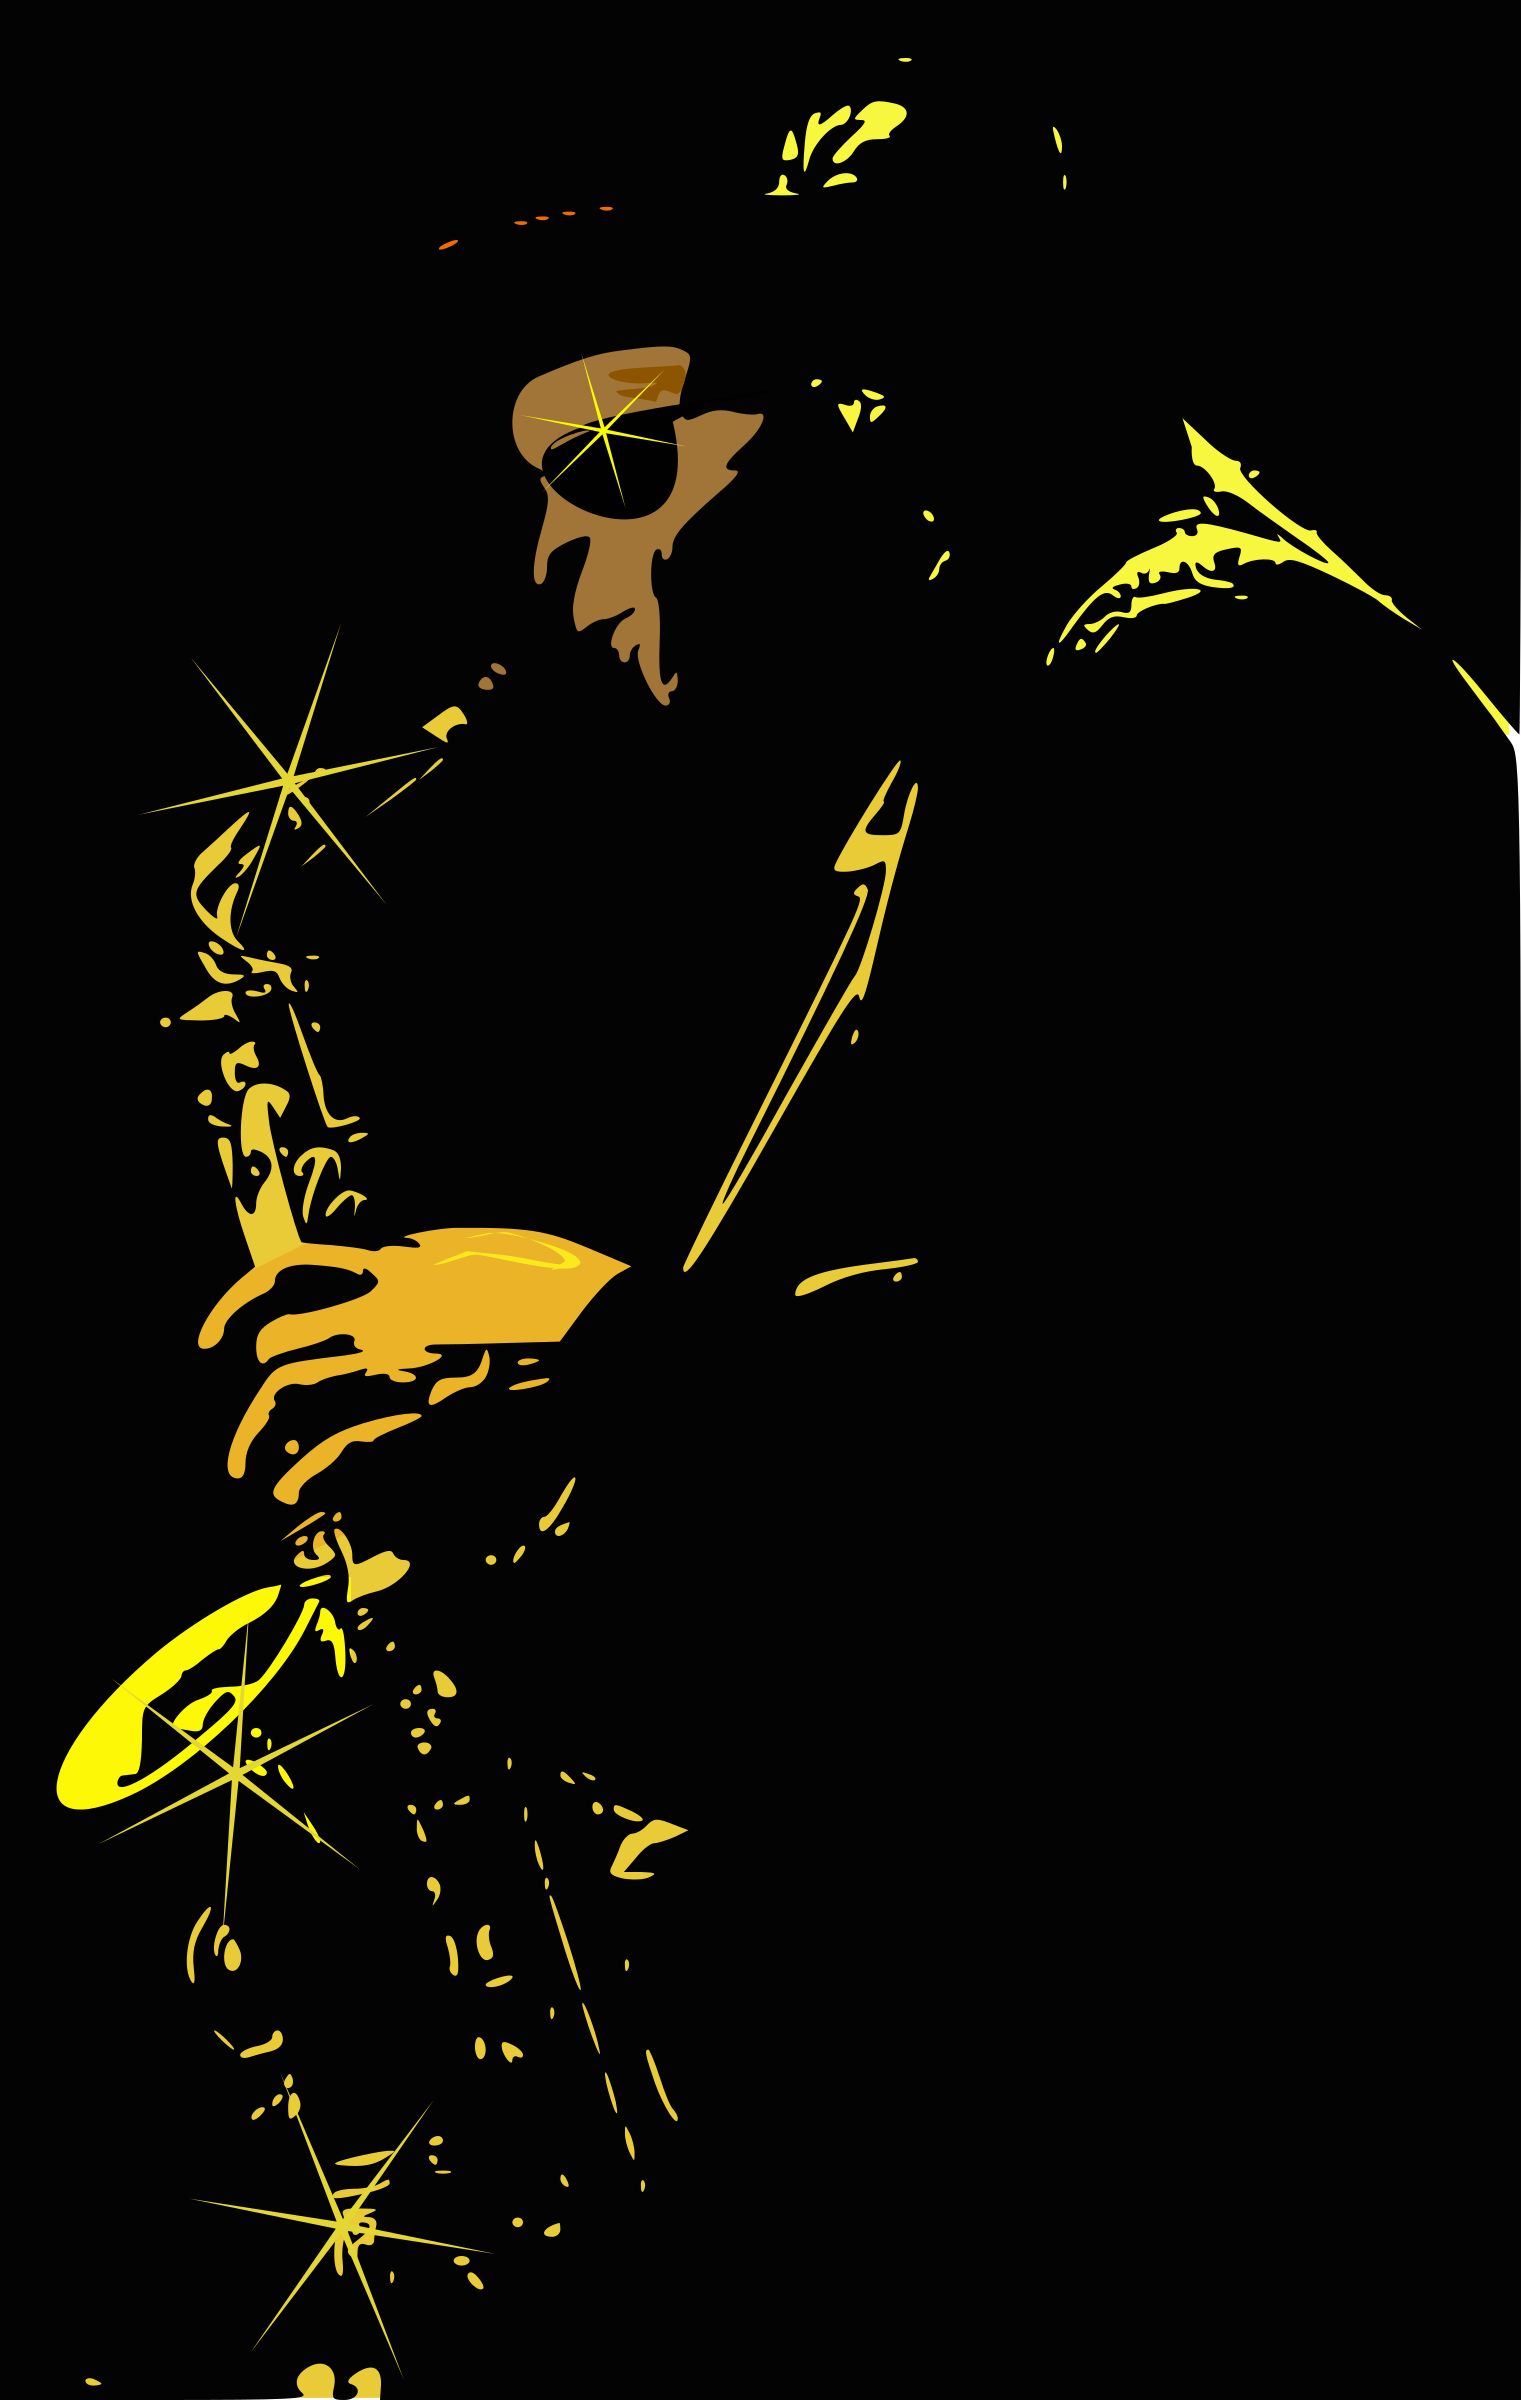 jazz enrique meza c 02 by emeza